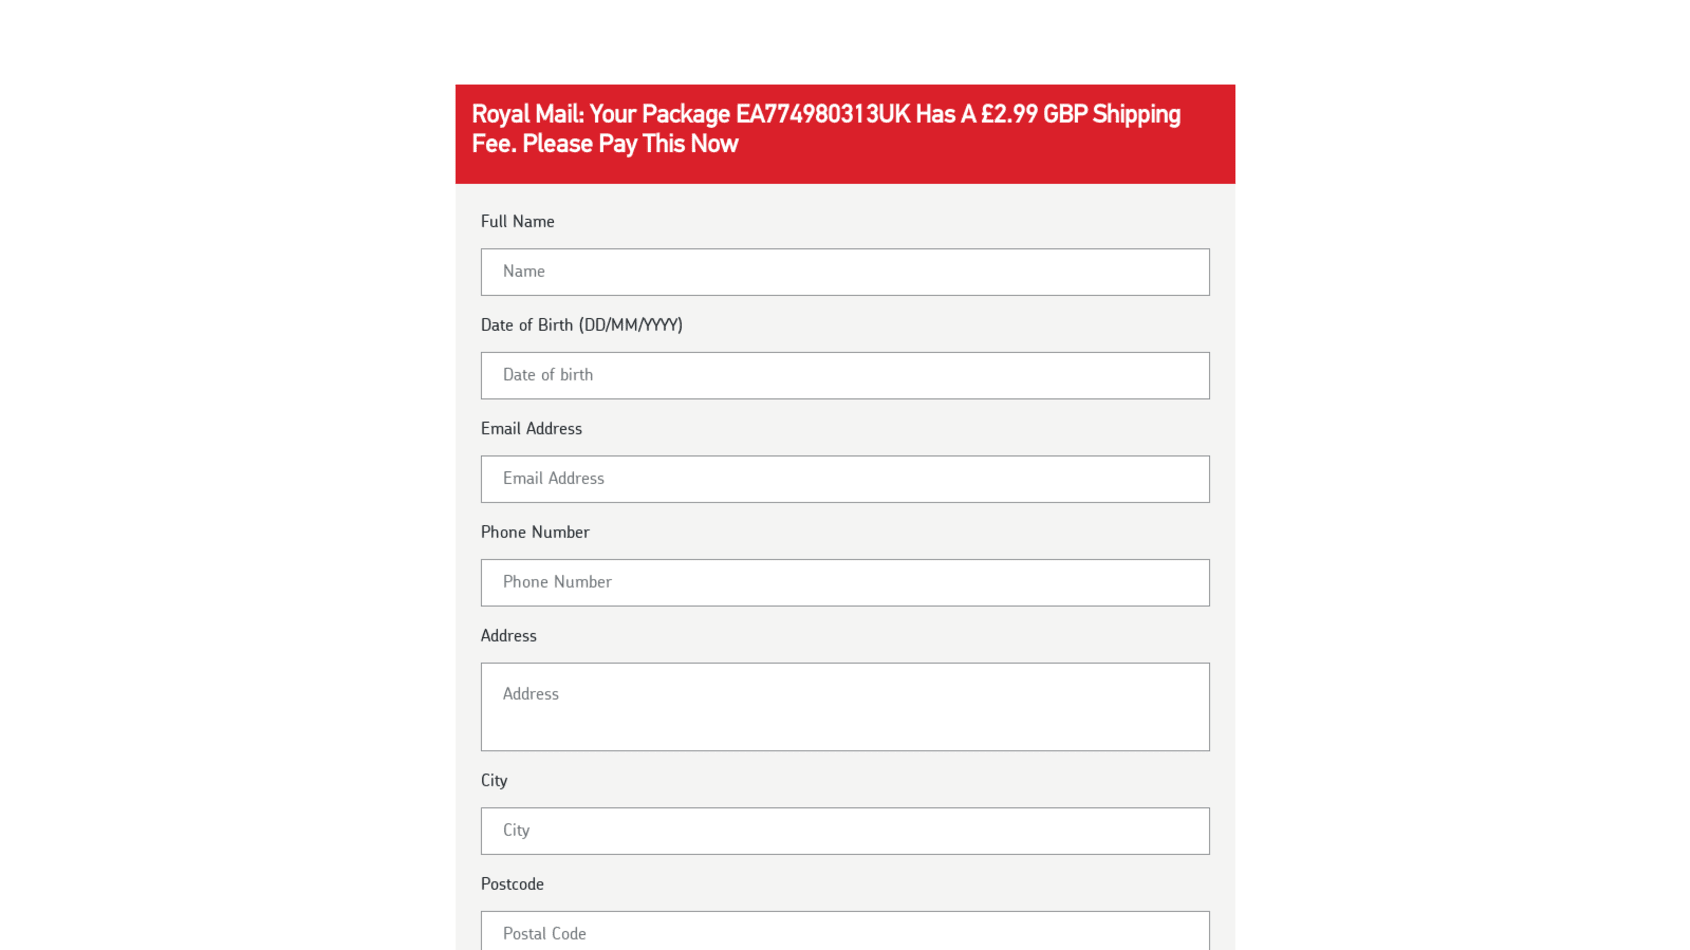 Royal Mail Phishing 1